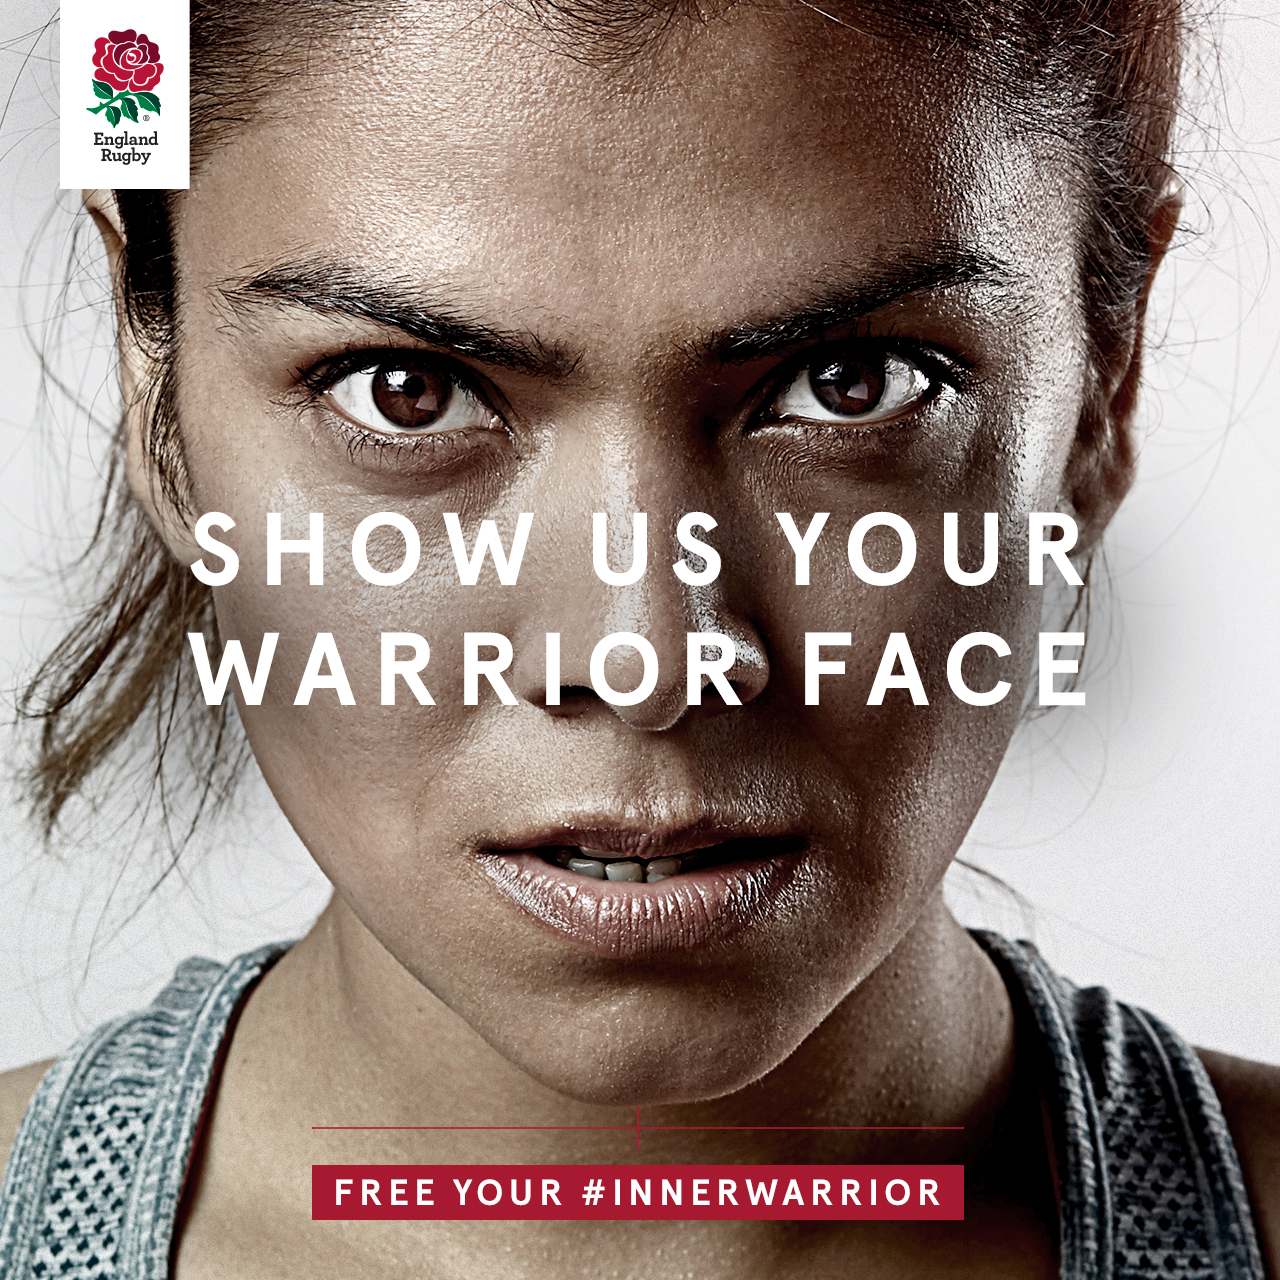 170727 RFU Inner Warrior Face Facebook 4.jpg